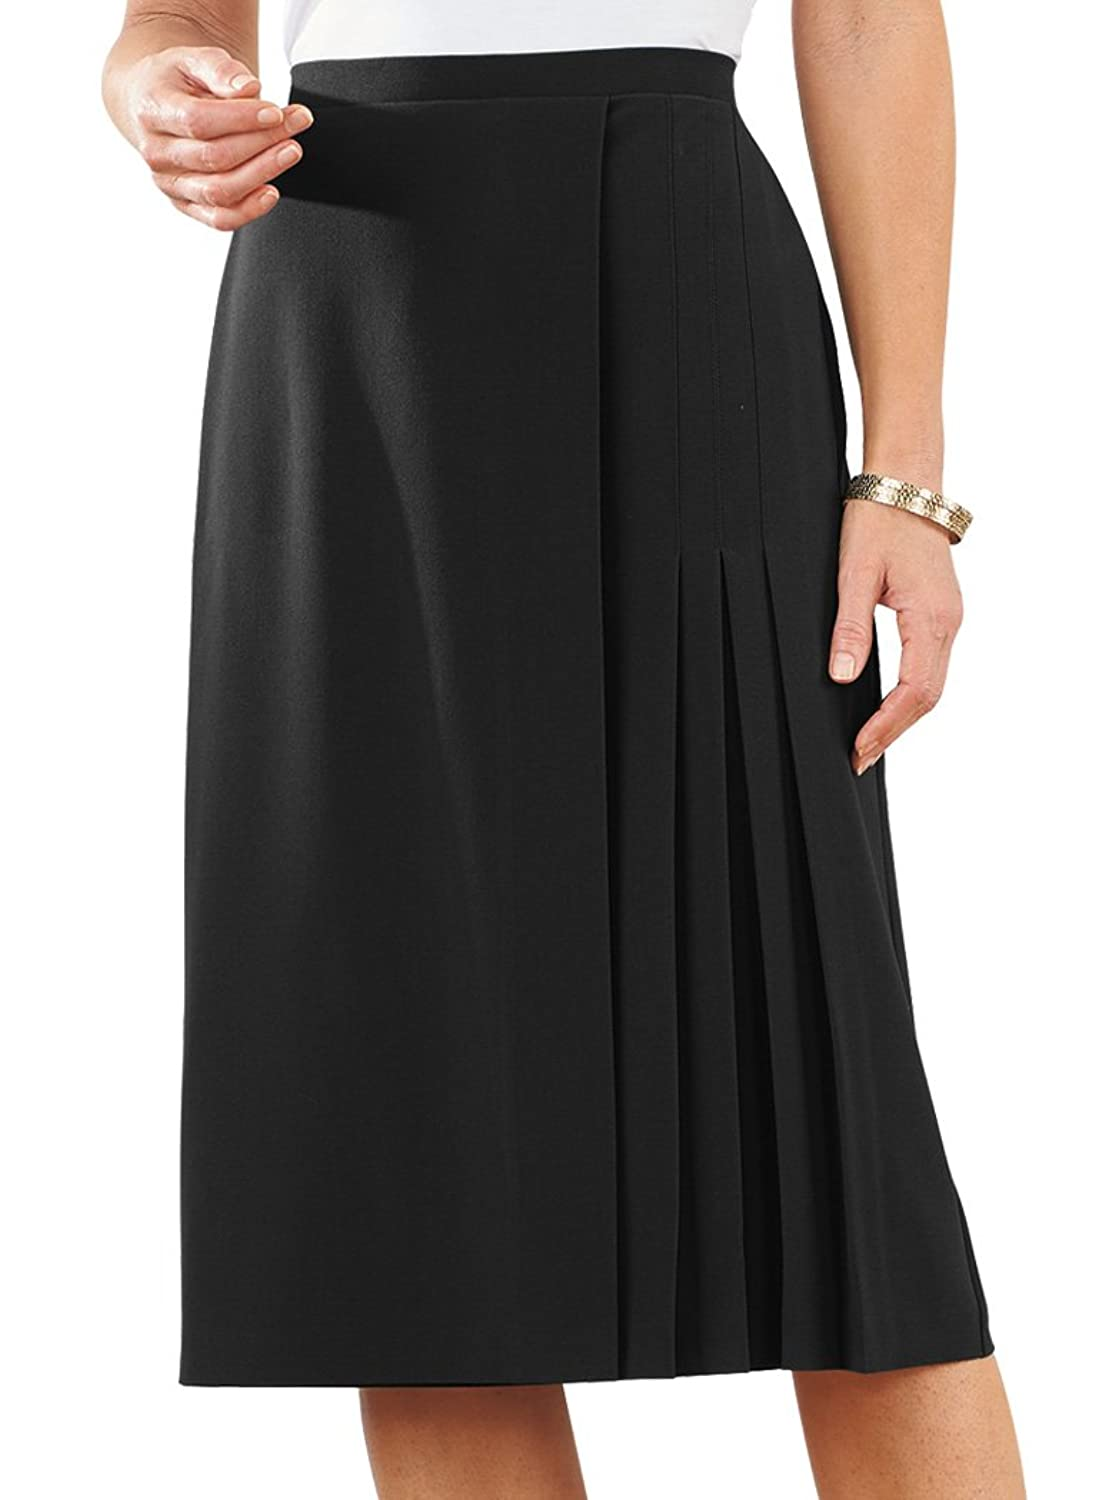 1940s Style Skirts- High Waist Vintage Skirts Faux Wrap Skirt $31.99 AT vintagedancer.com